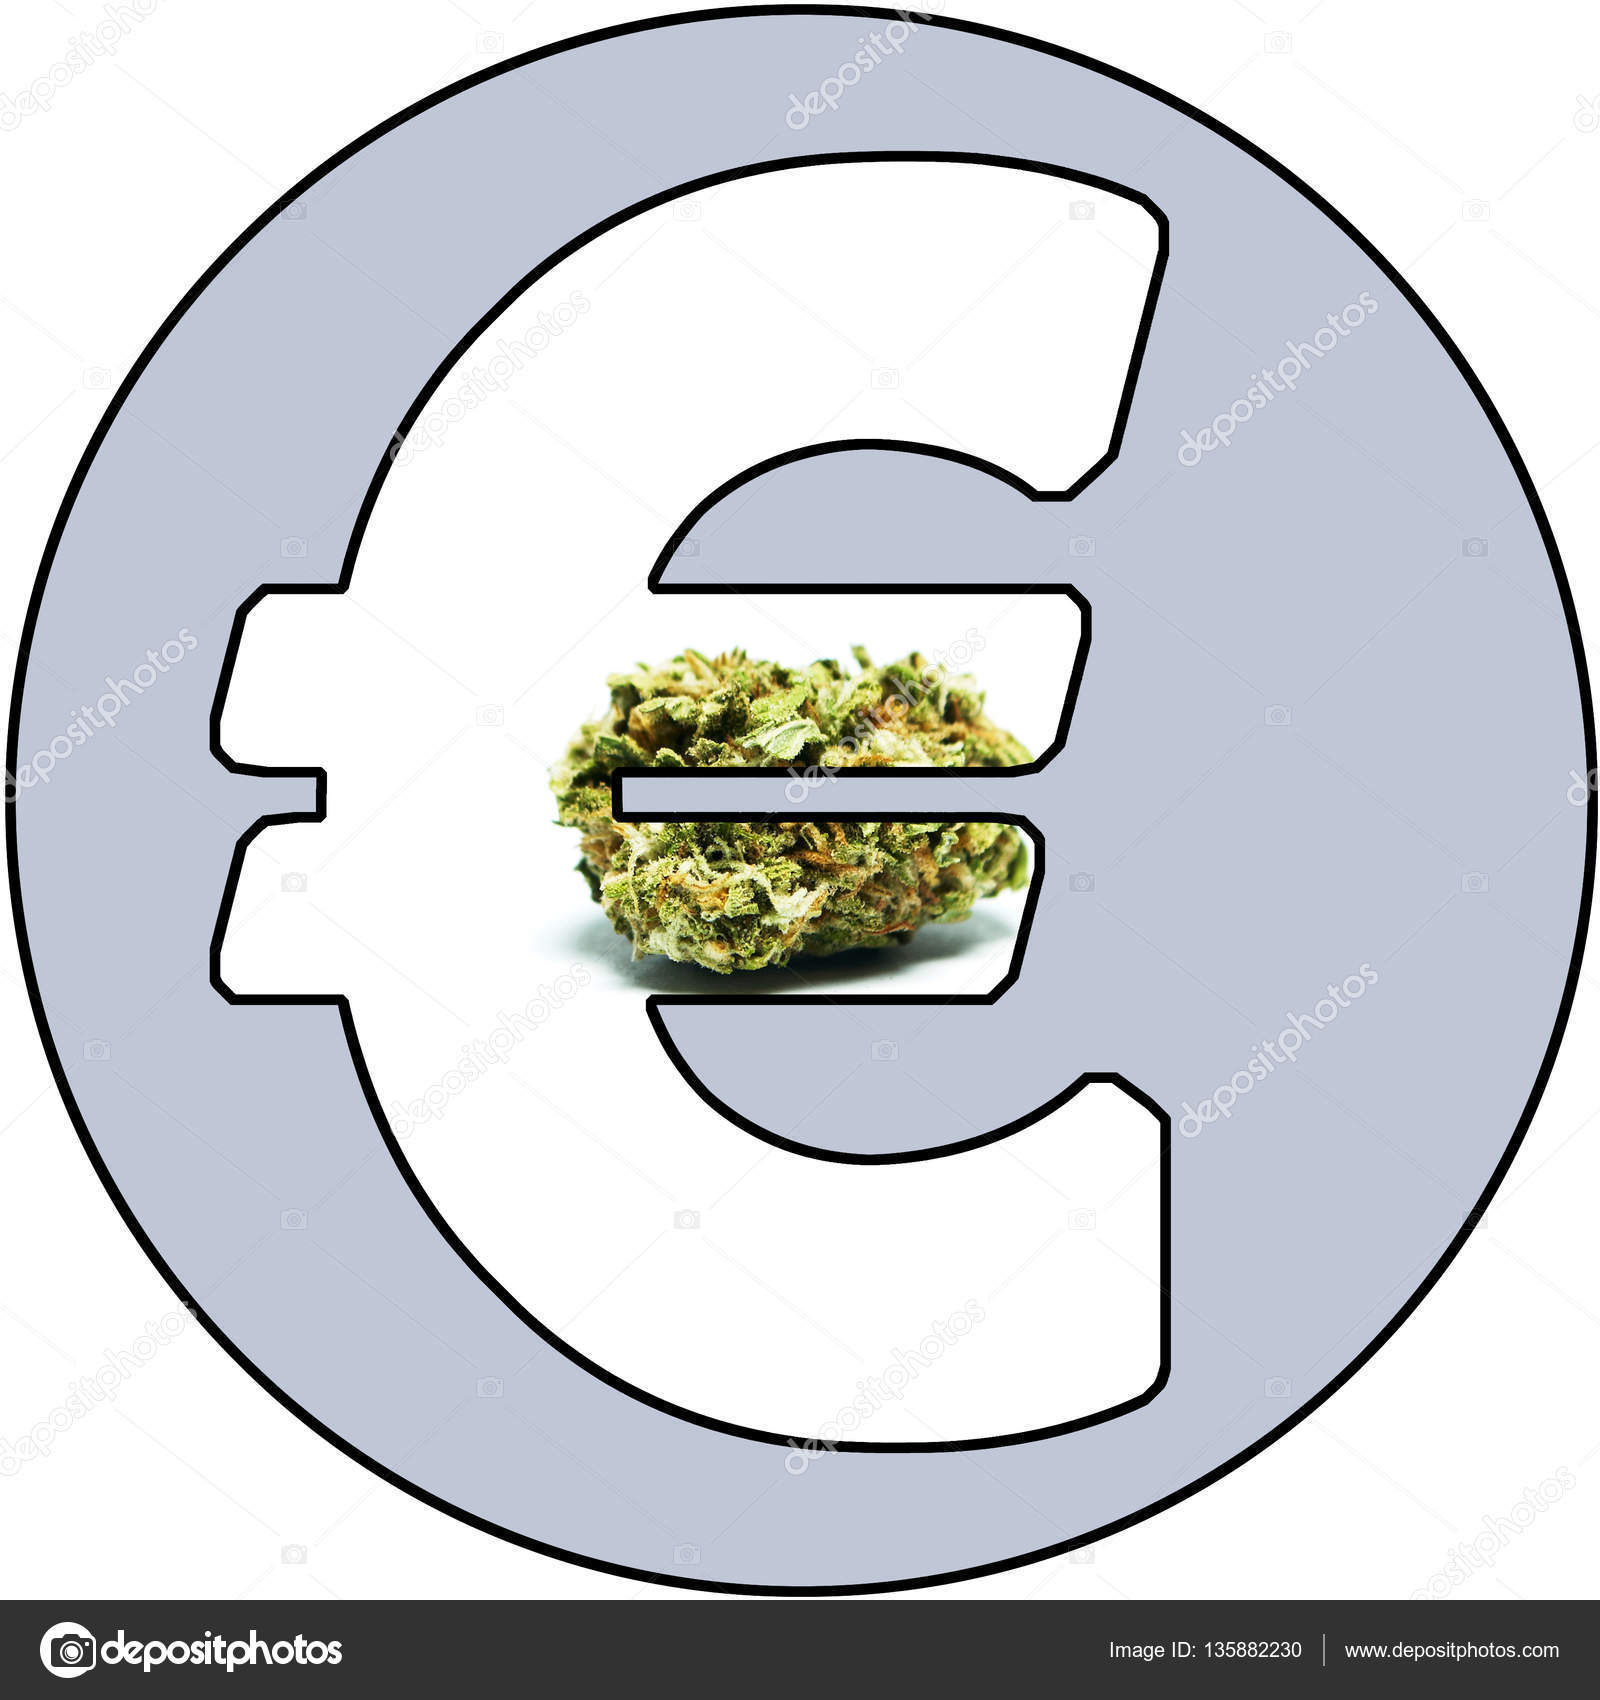 Marijuana Money Cannabis Weed And Pot Buds In The Euro Symbol